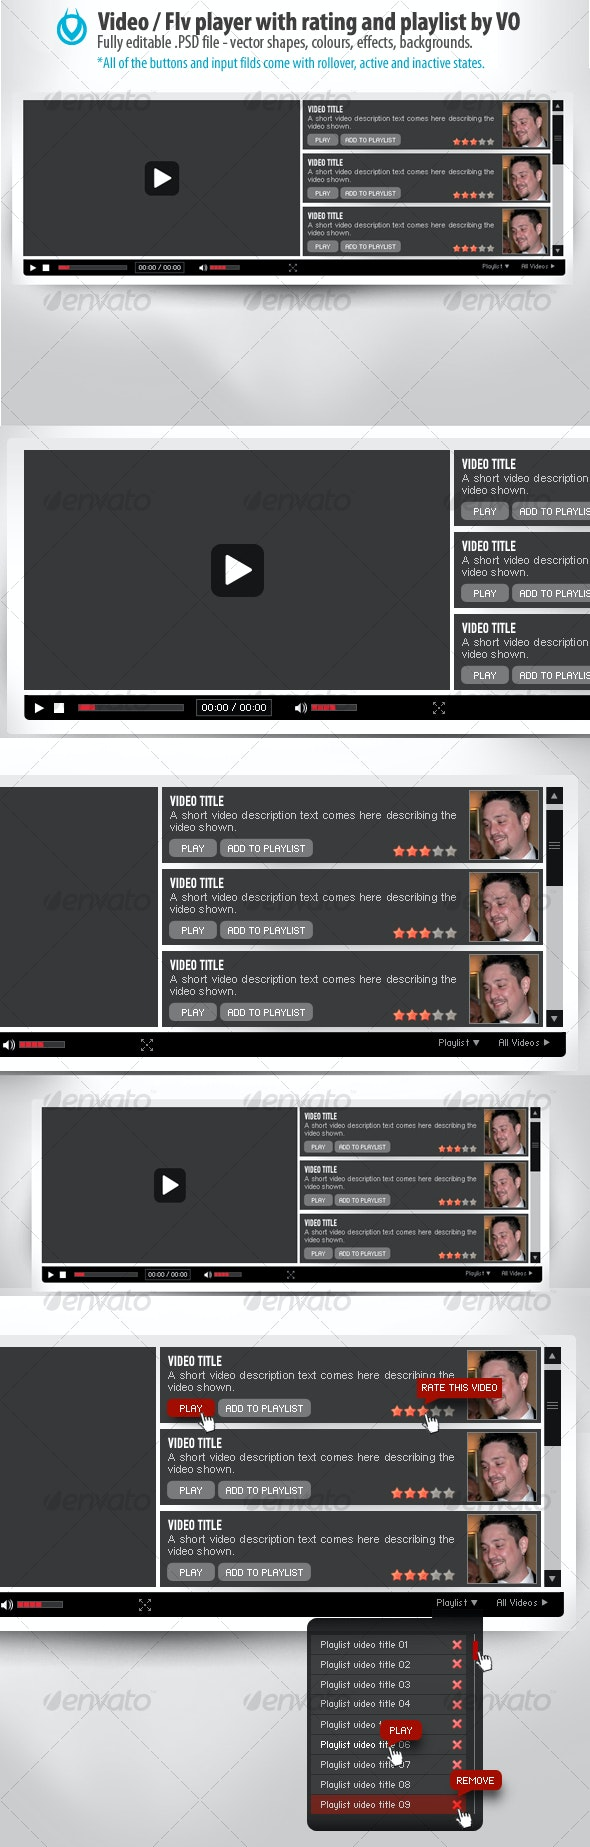 Video / Flv video player with playlist and ratings - Web Elements